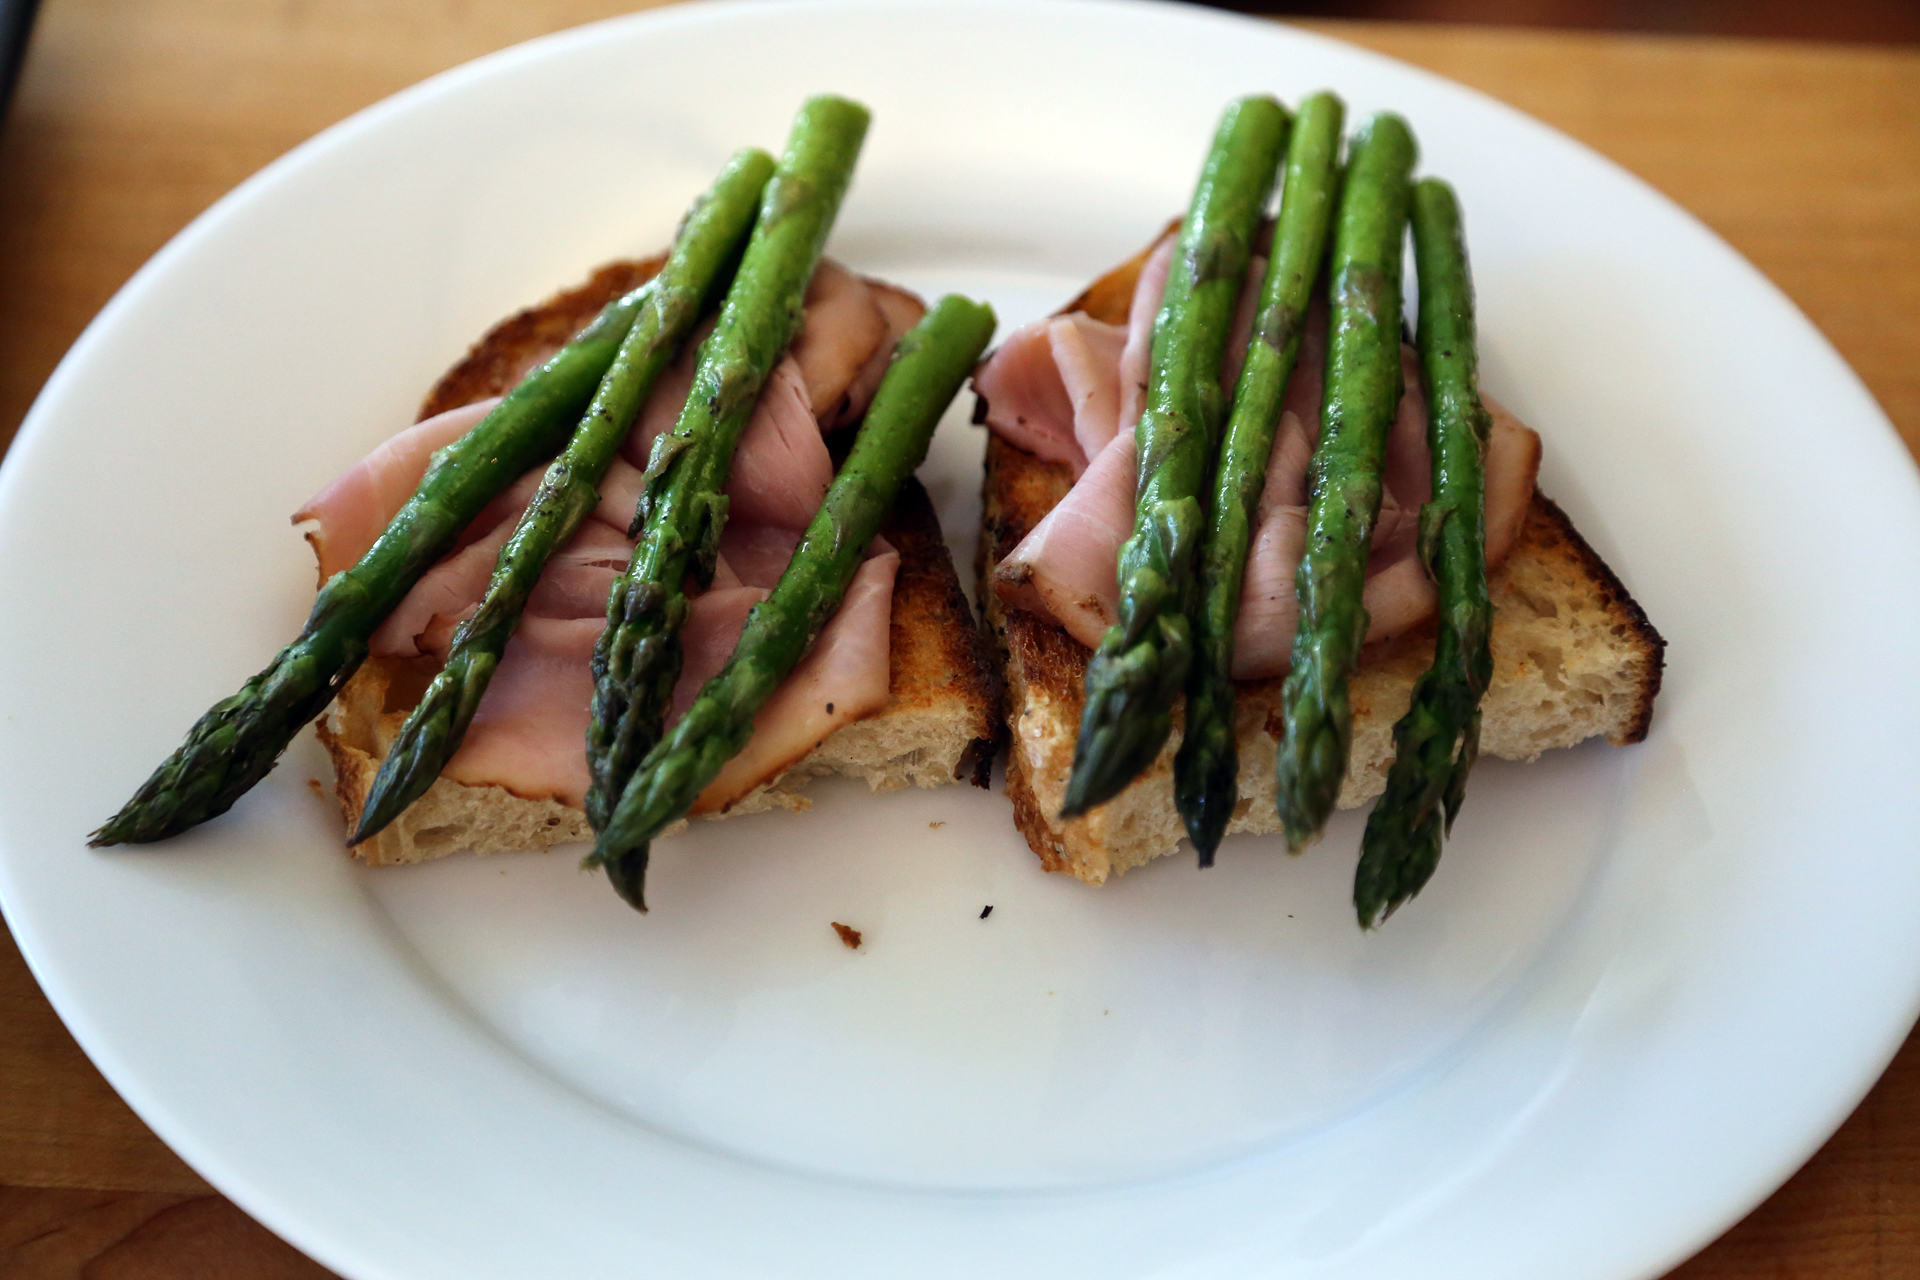 Divide the toast between warmed individual plates, using 1 or 2 slices per plate. Top each slice with a slice of ham, then divide the asparagus between the toasts.